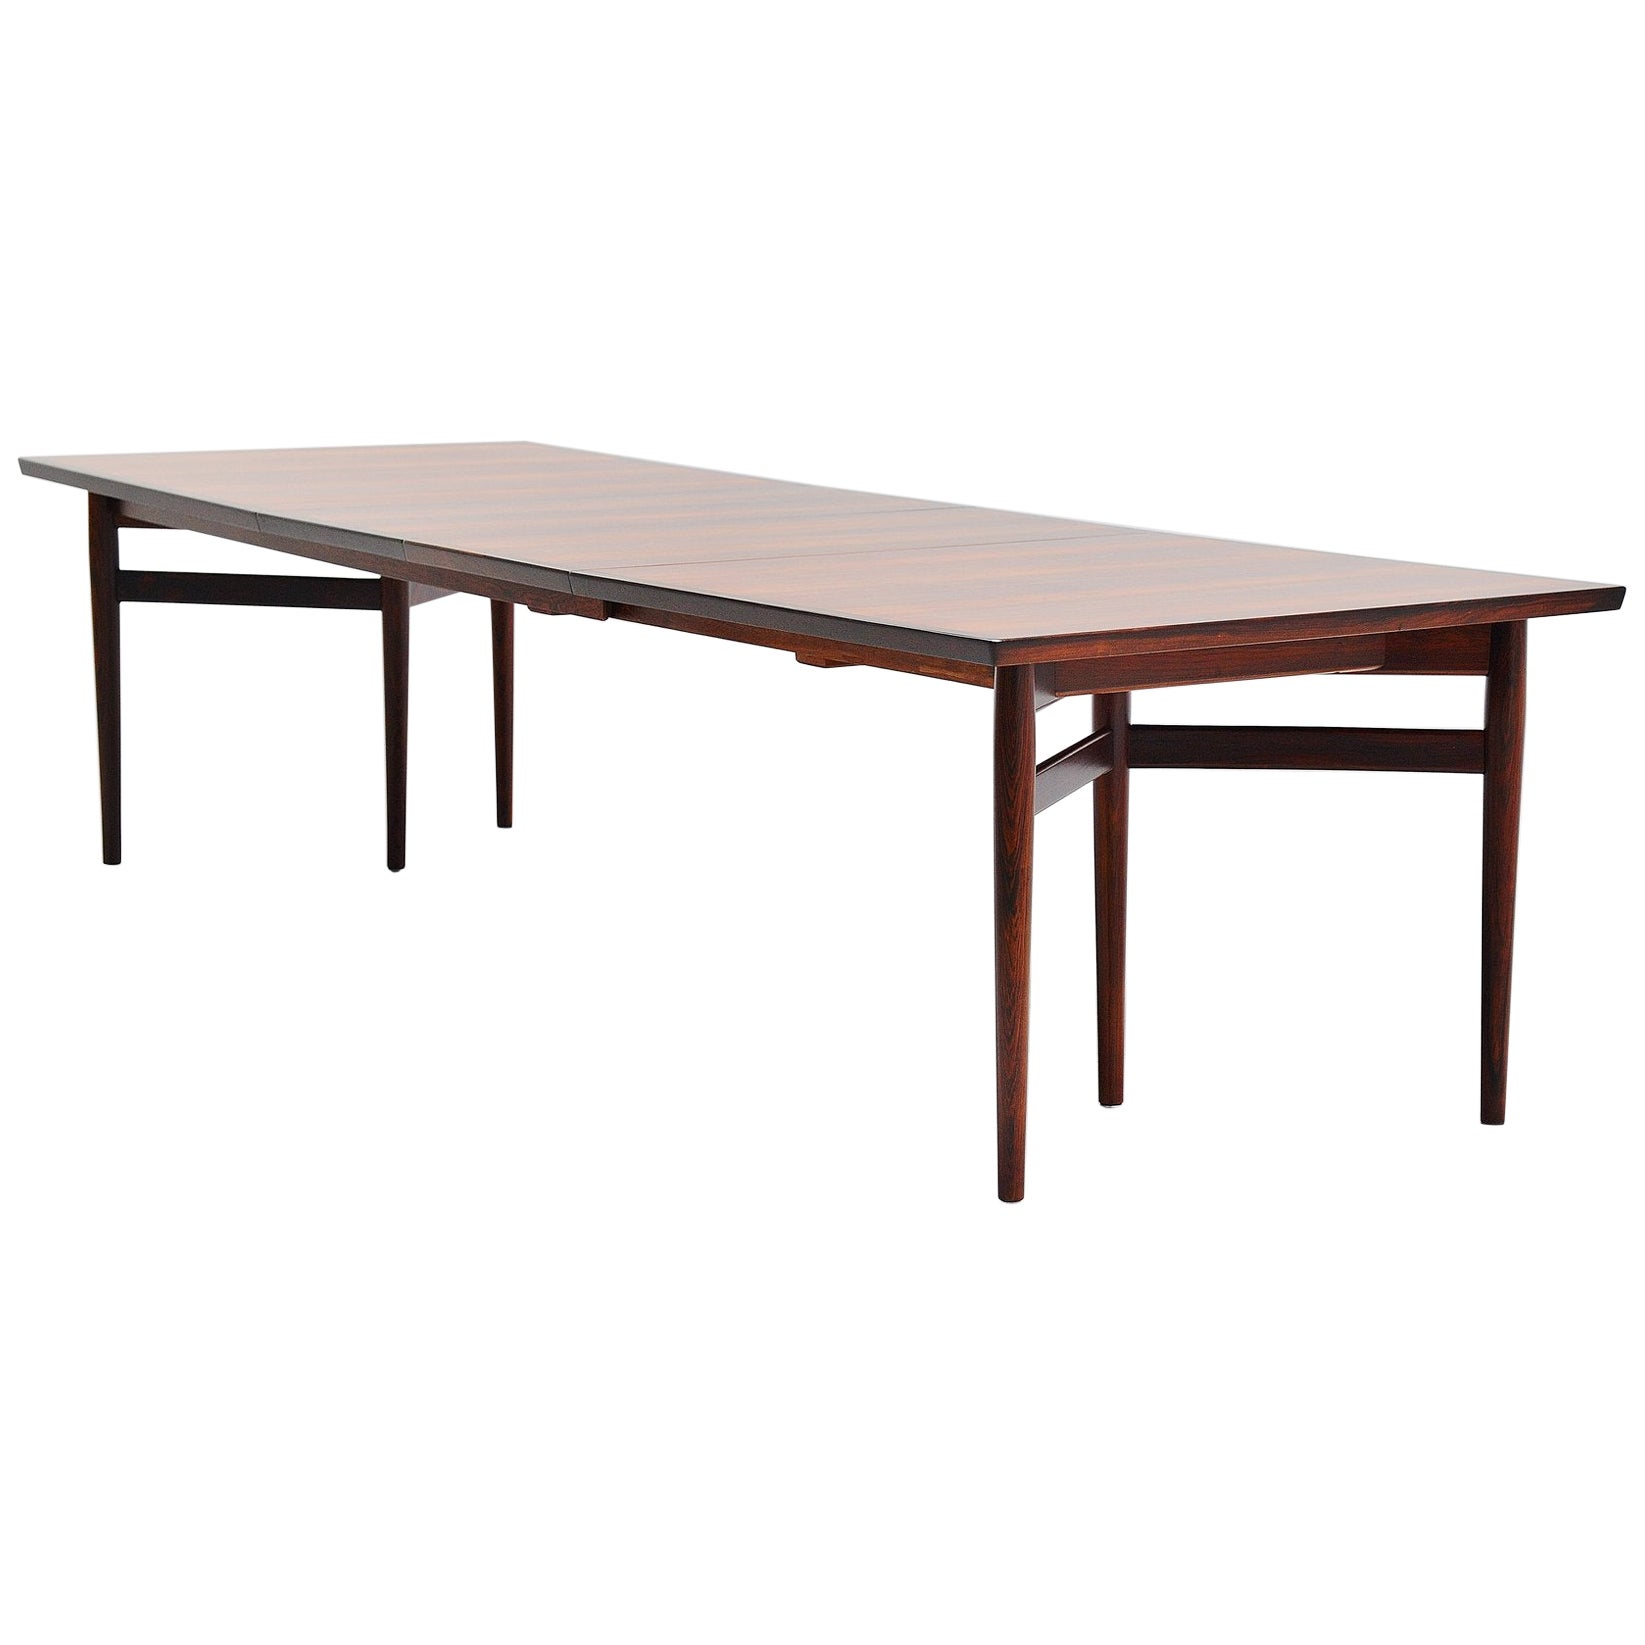 Arne Vodder Long Dining Table Sibast Mobler, Denmark, 1960